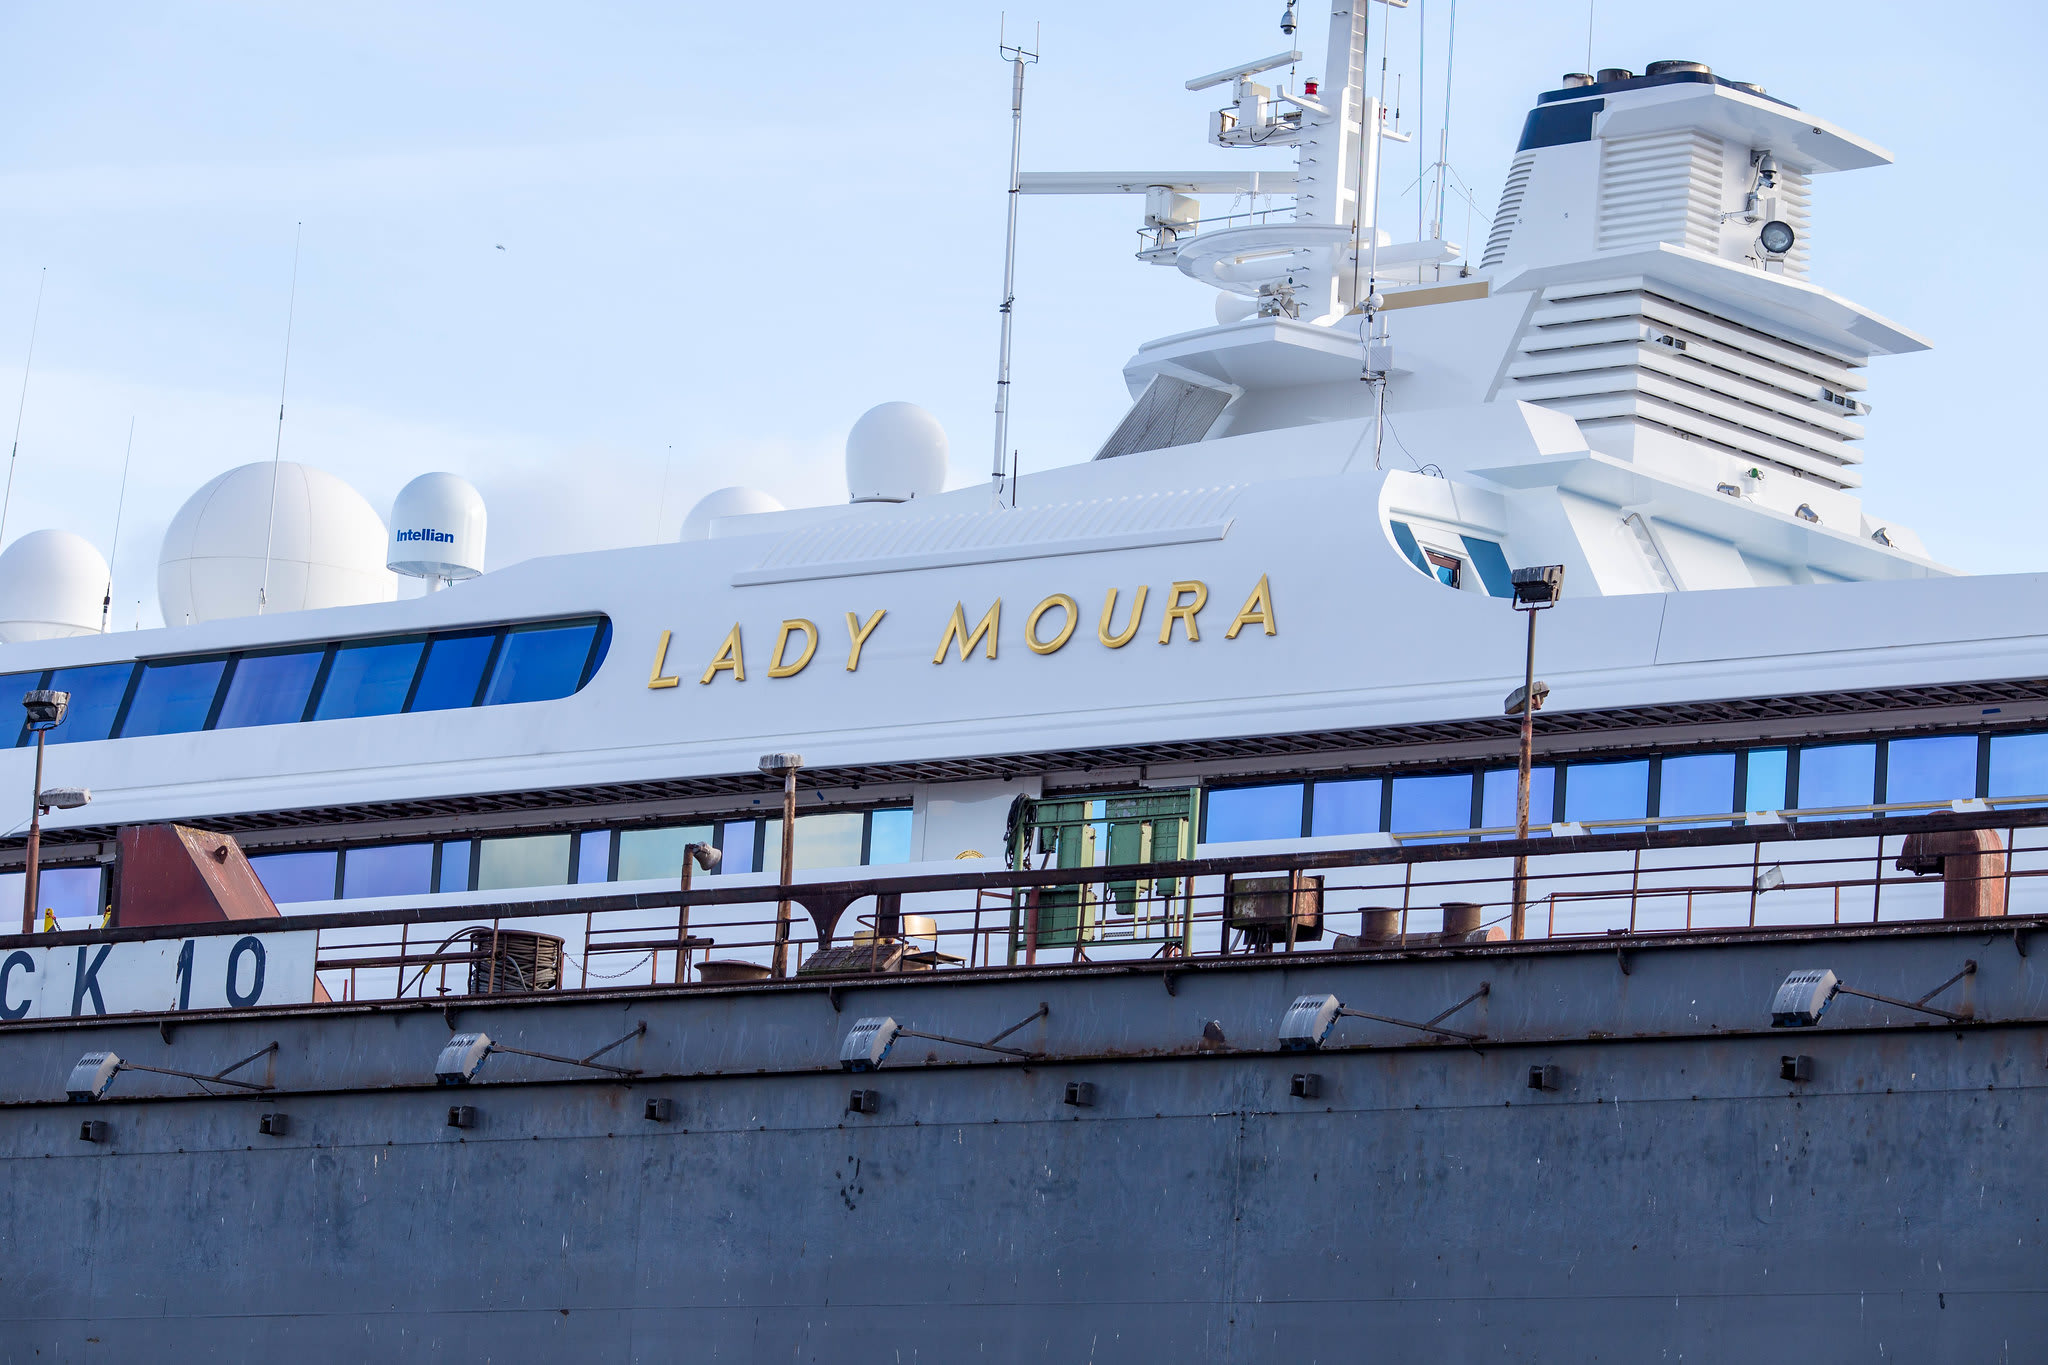 Lady moura best luxury yacht